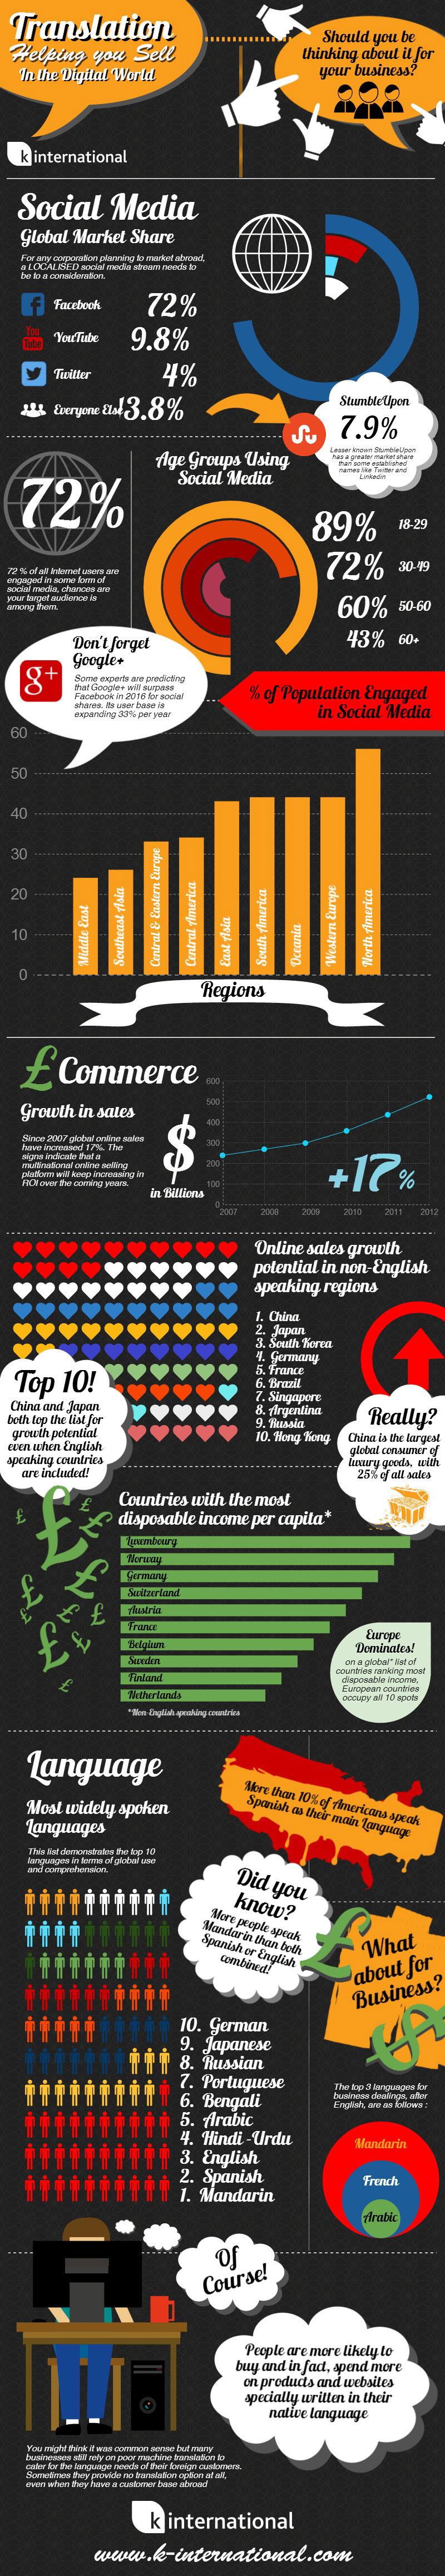 Translation Infographic: Helping you Sell On-line